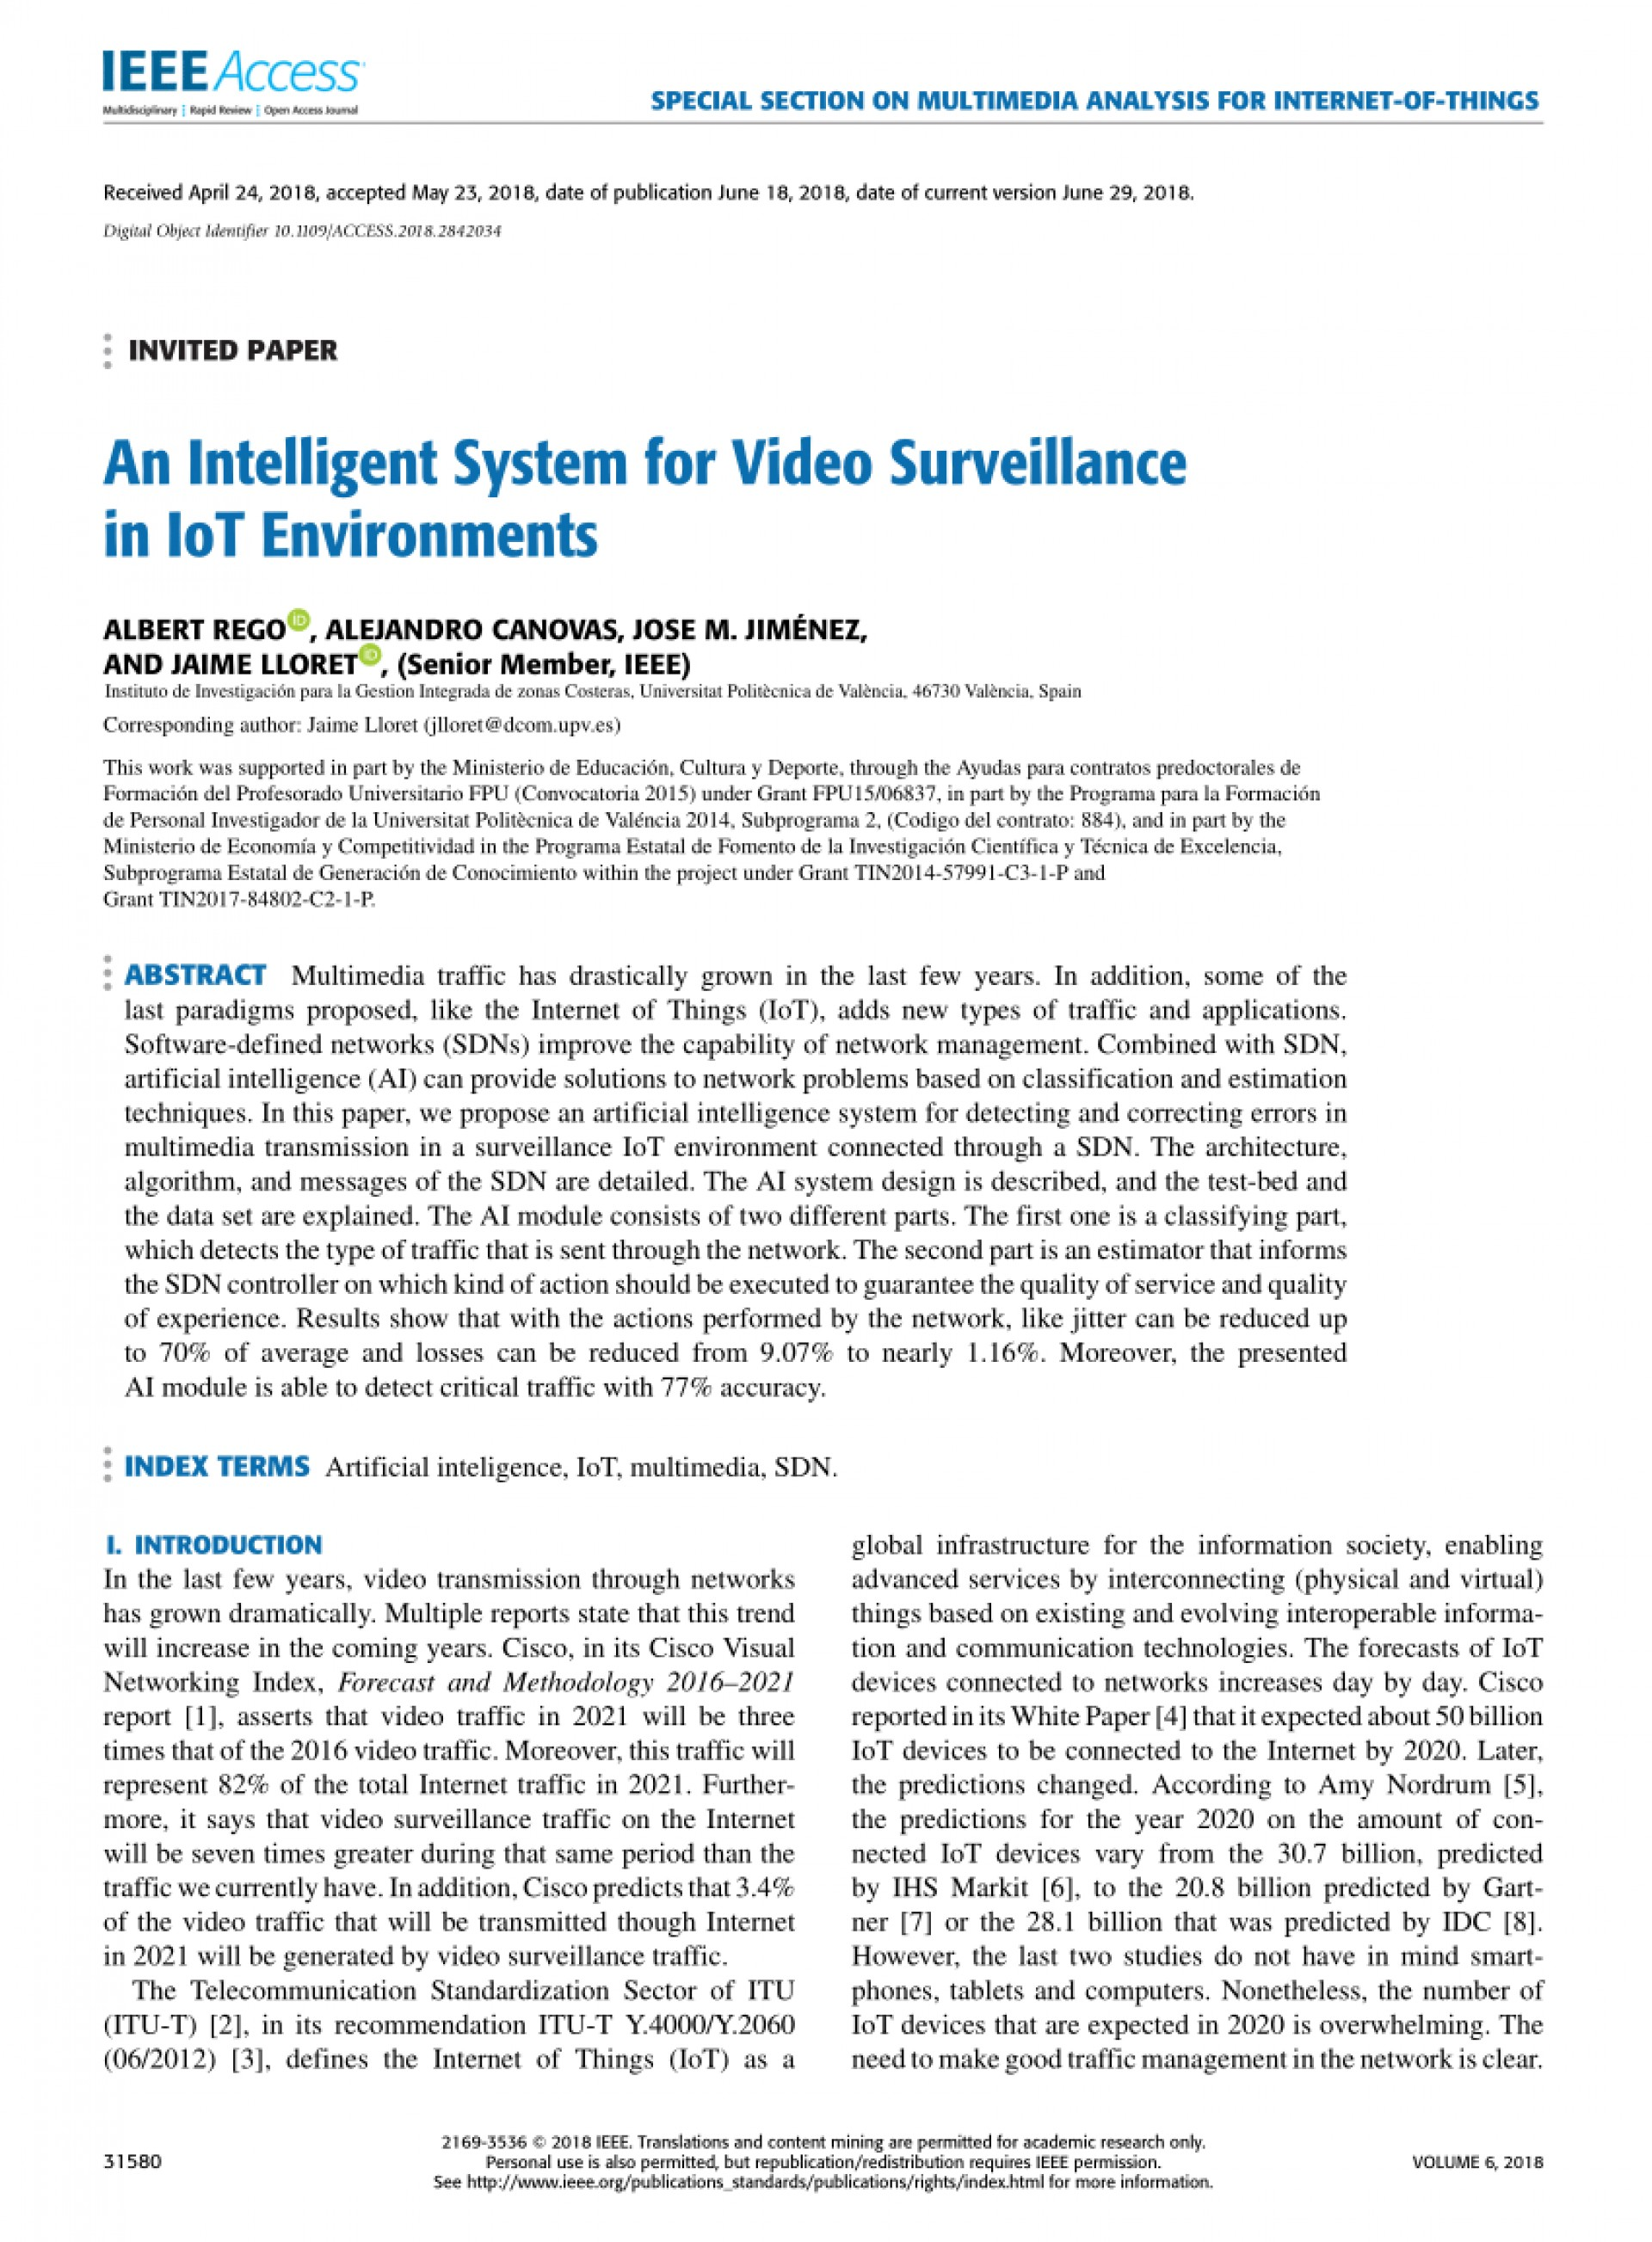 003 Largepreview Research Paper Artificial Intelligence Fantastic Ieee 2017 1920